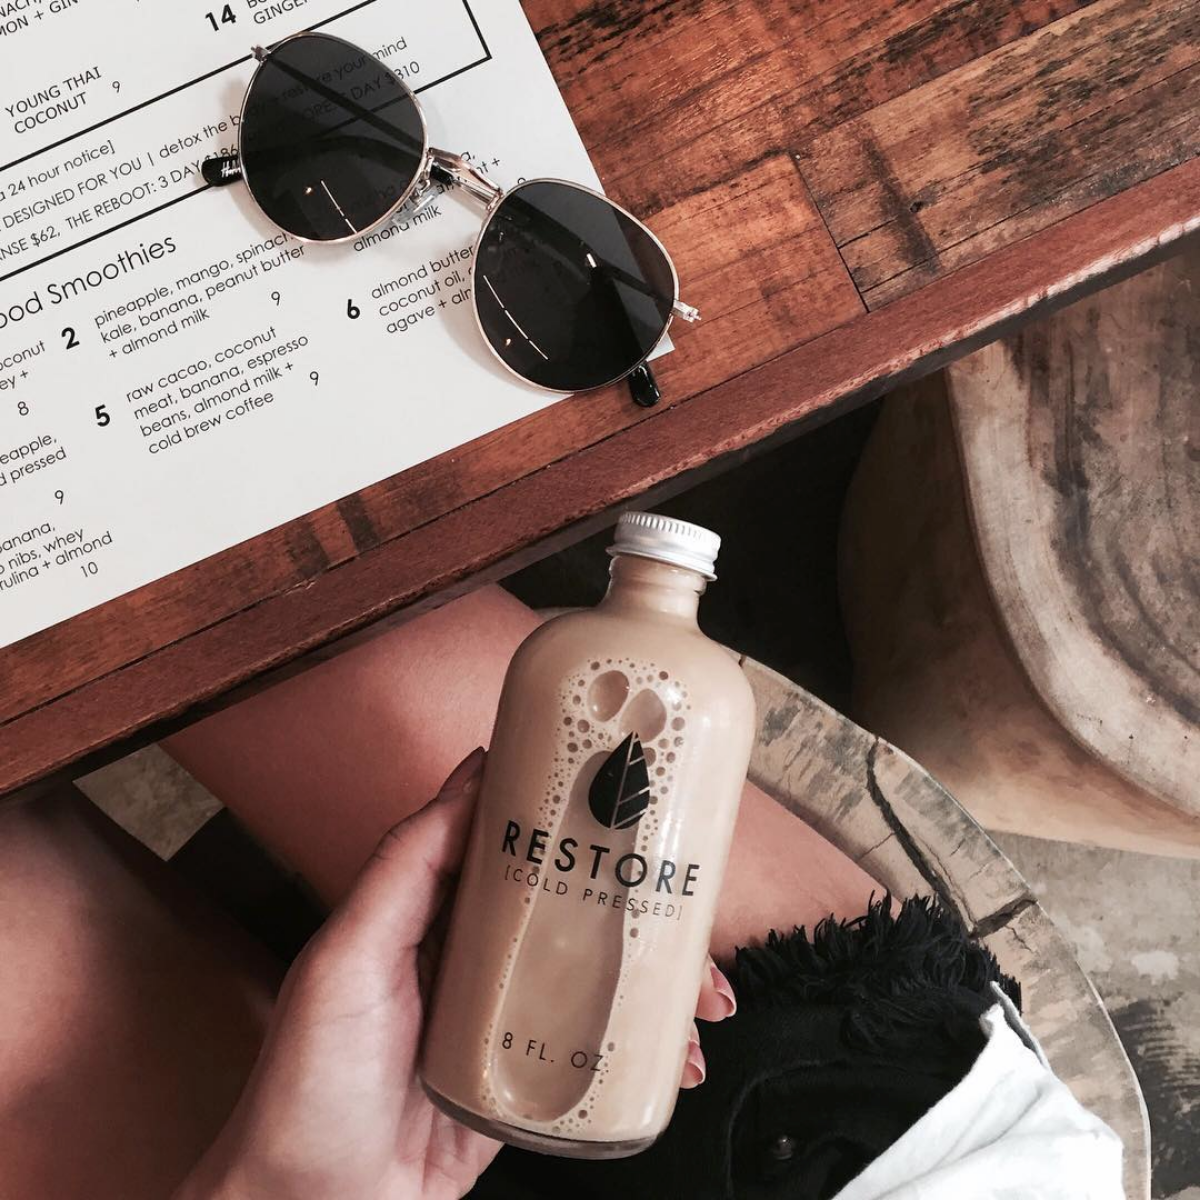 Restore [Cold Pressed] - The freshest of them all.